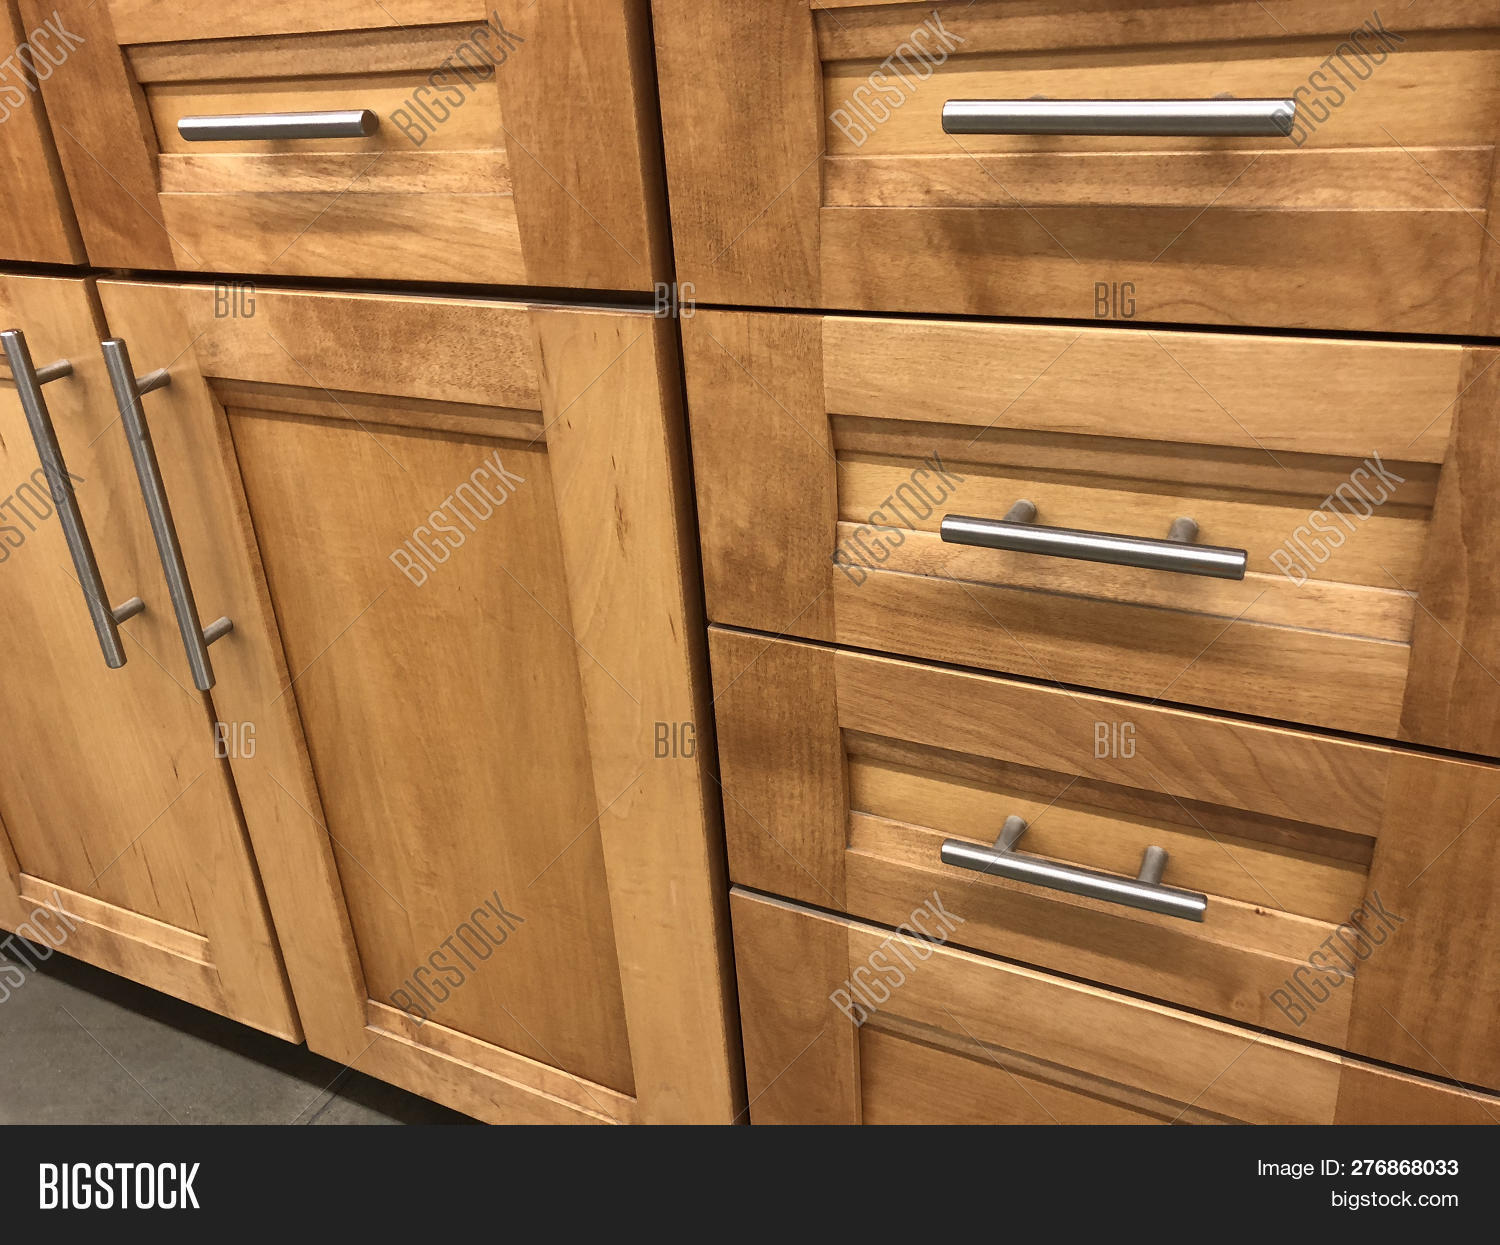 Wood Kitchen Cabinets Image Photo Free Trial Bigstock